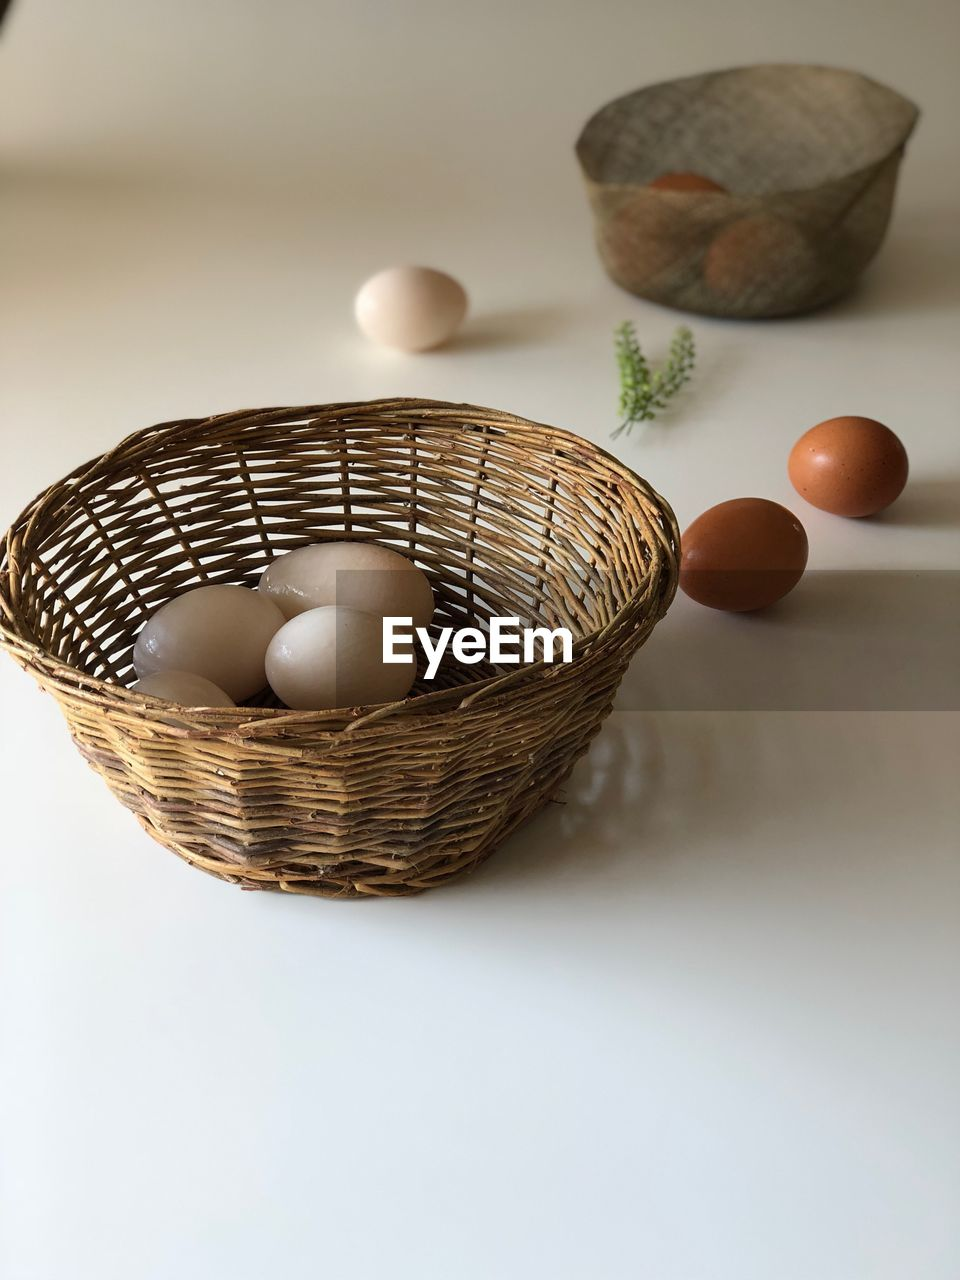 egg, basket, indoors, container, food, food and drink, table, studio shot, still life, wicker, no people, close-up, easter egg, easter, bowl, white background, healthy eating, freshness, wellbeing, focus on foreground